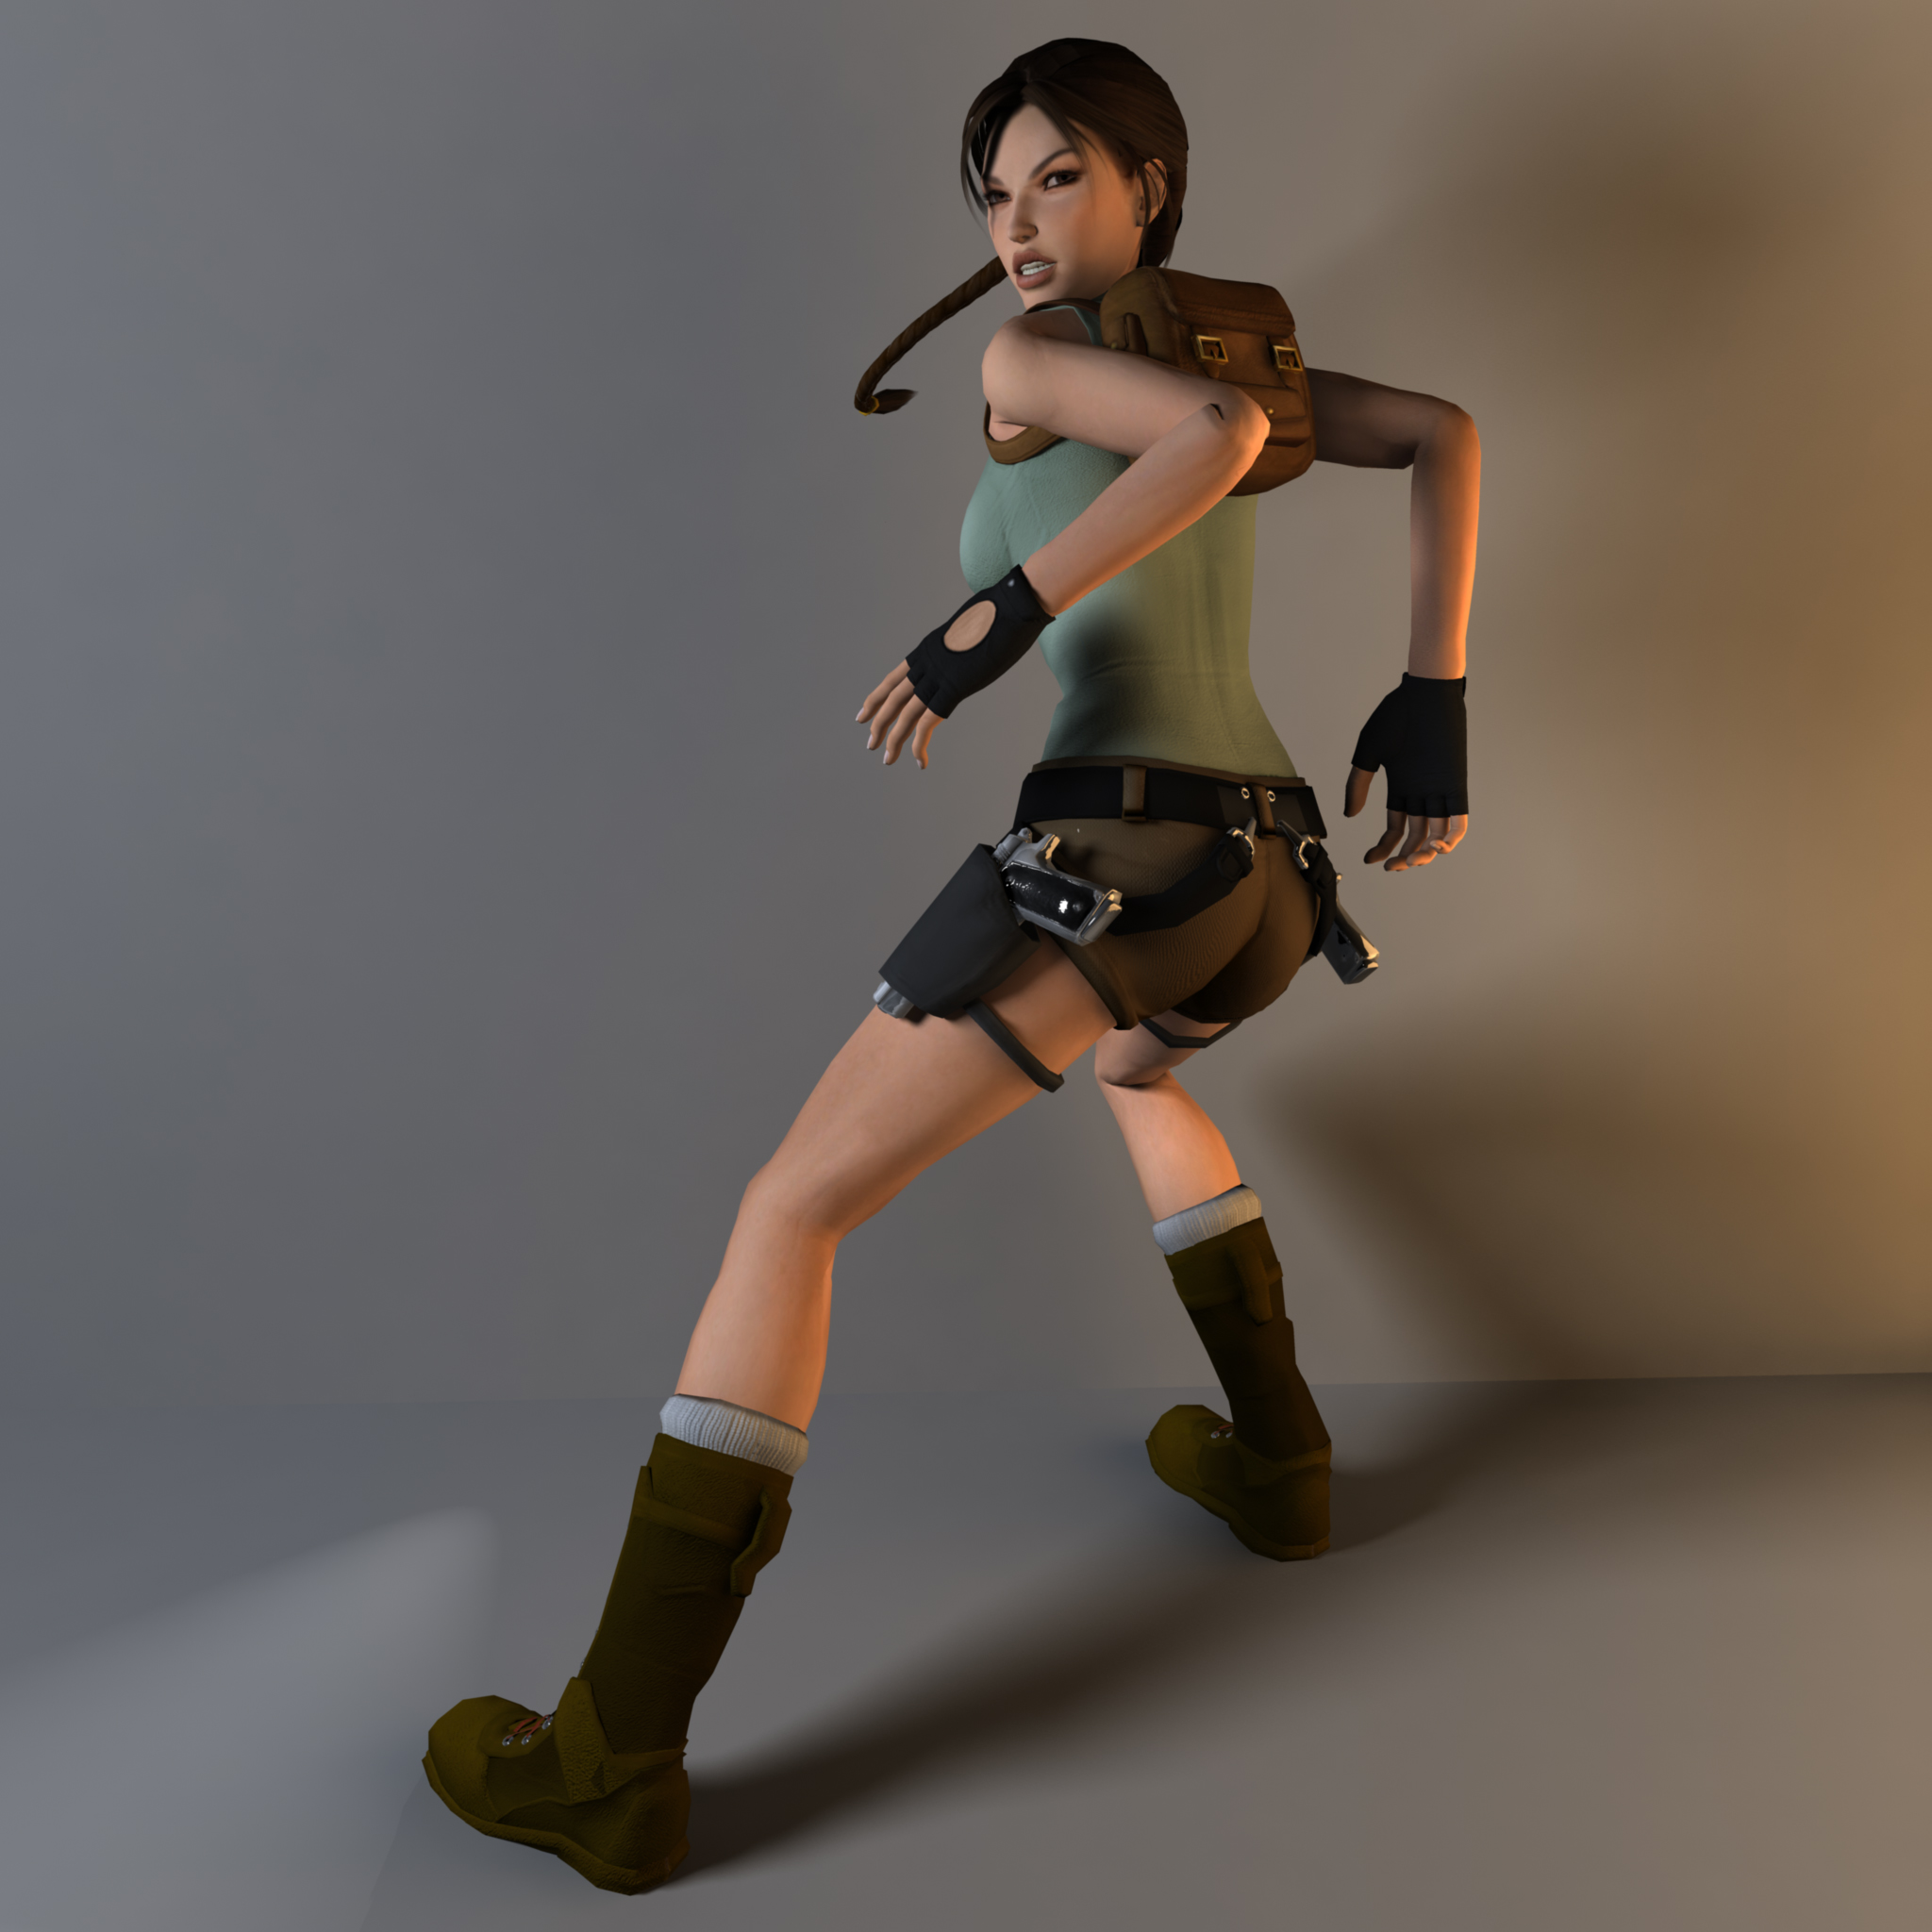 Tomb Rider Wallpaper: Tomb Raider 1 Render Remake By Silviu4mc On DeviantArt